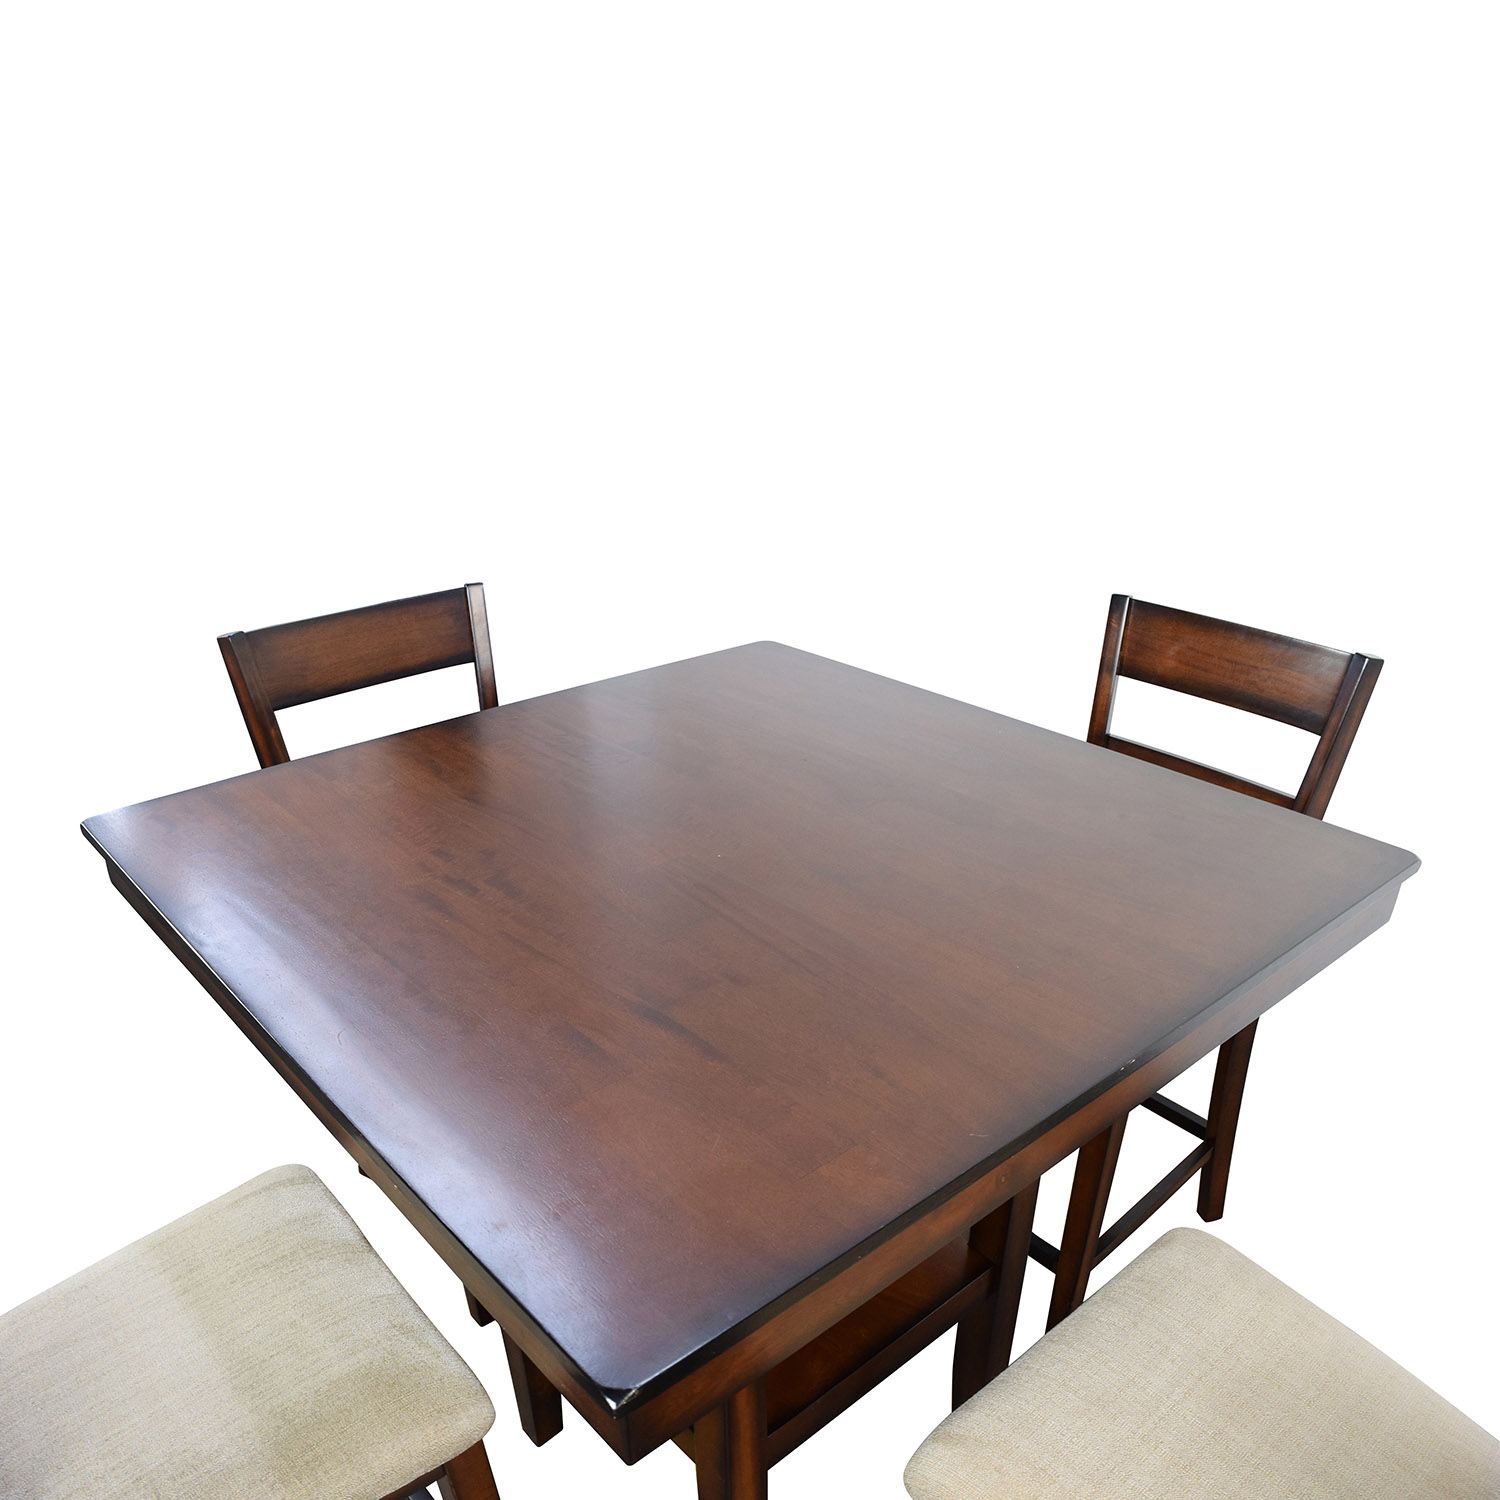 66 OFF Macy 39 S Macy 39 S Branton 5 Pc Counter Height Dining Set Tables